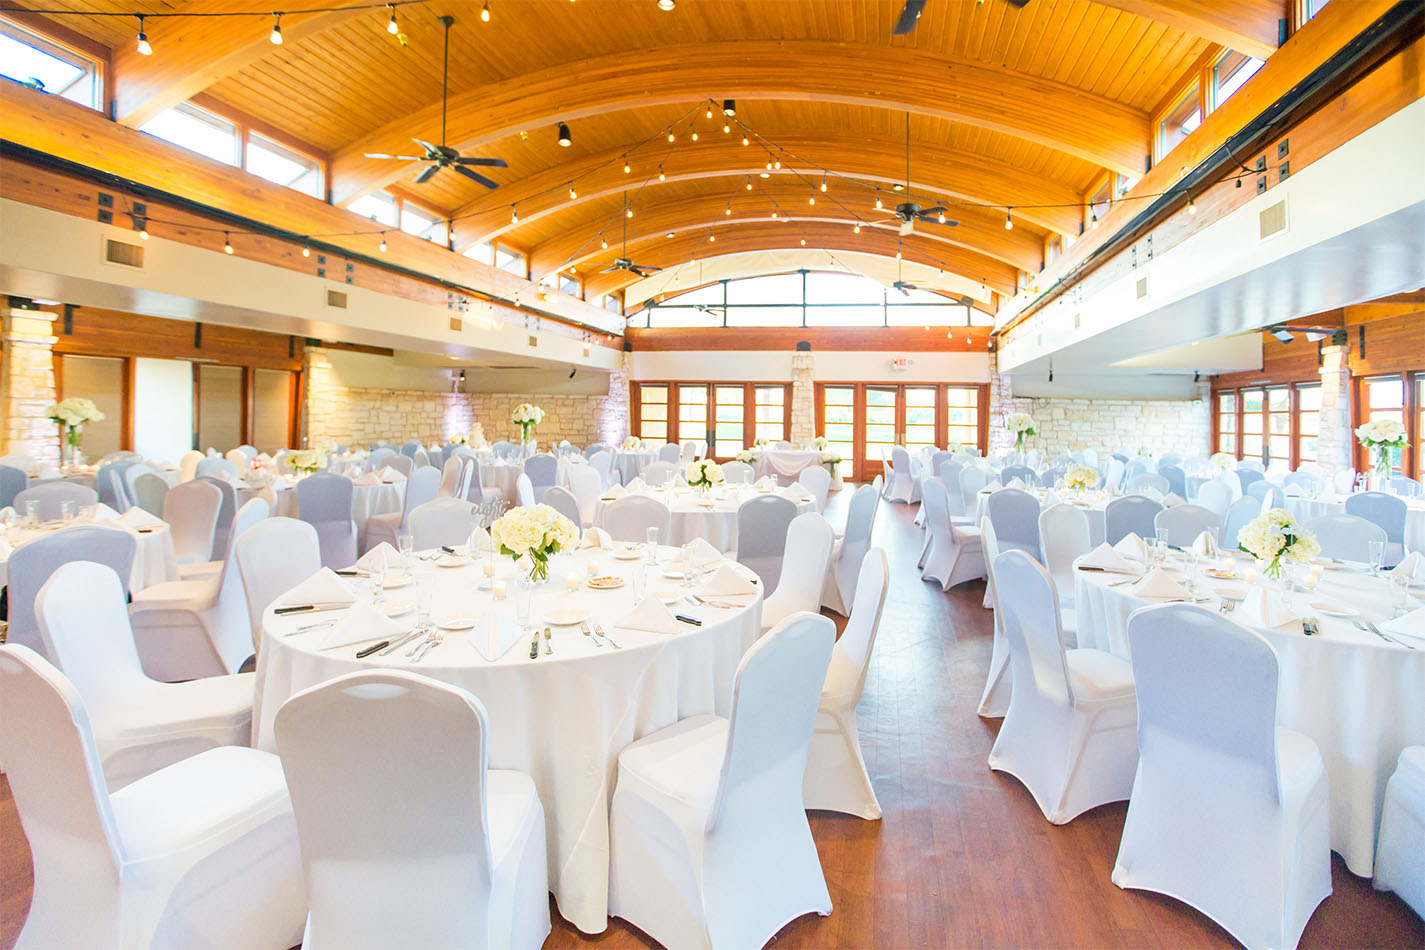 Grand ballroom with vaulted wood ceiling and expansive windows